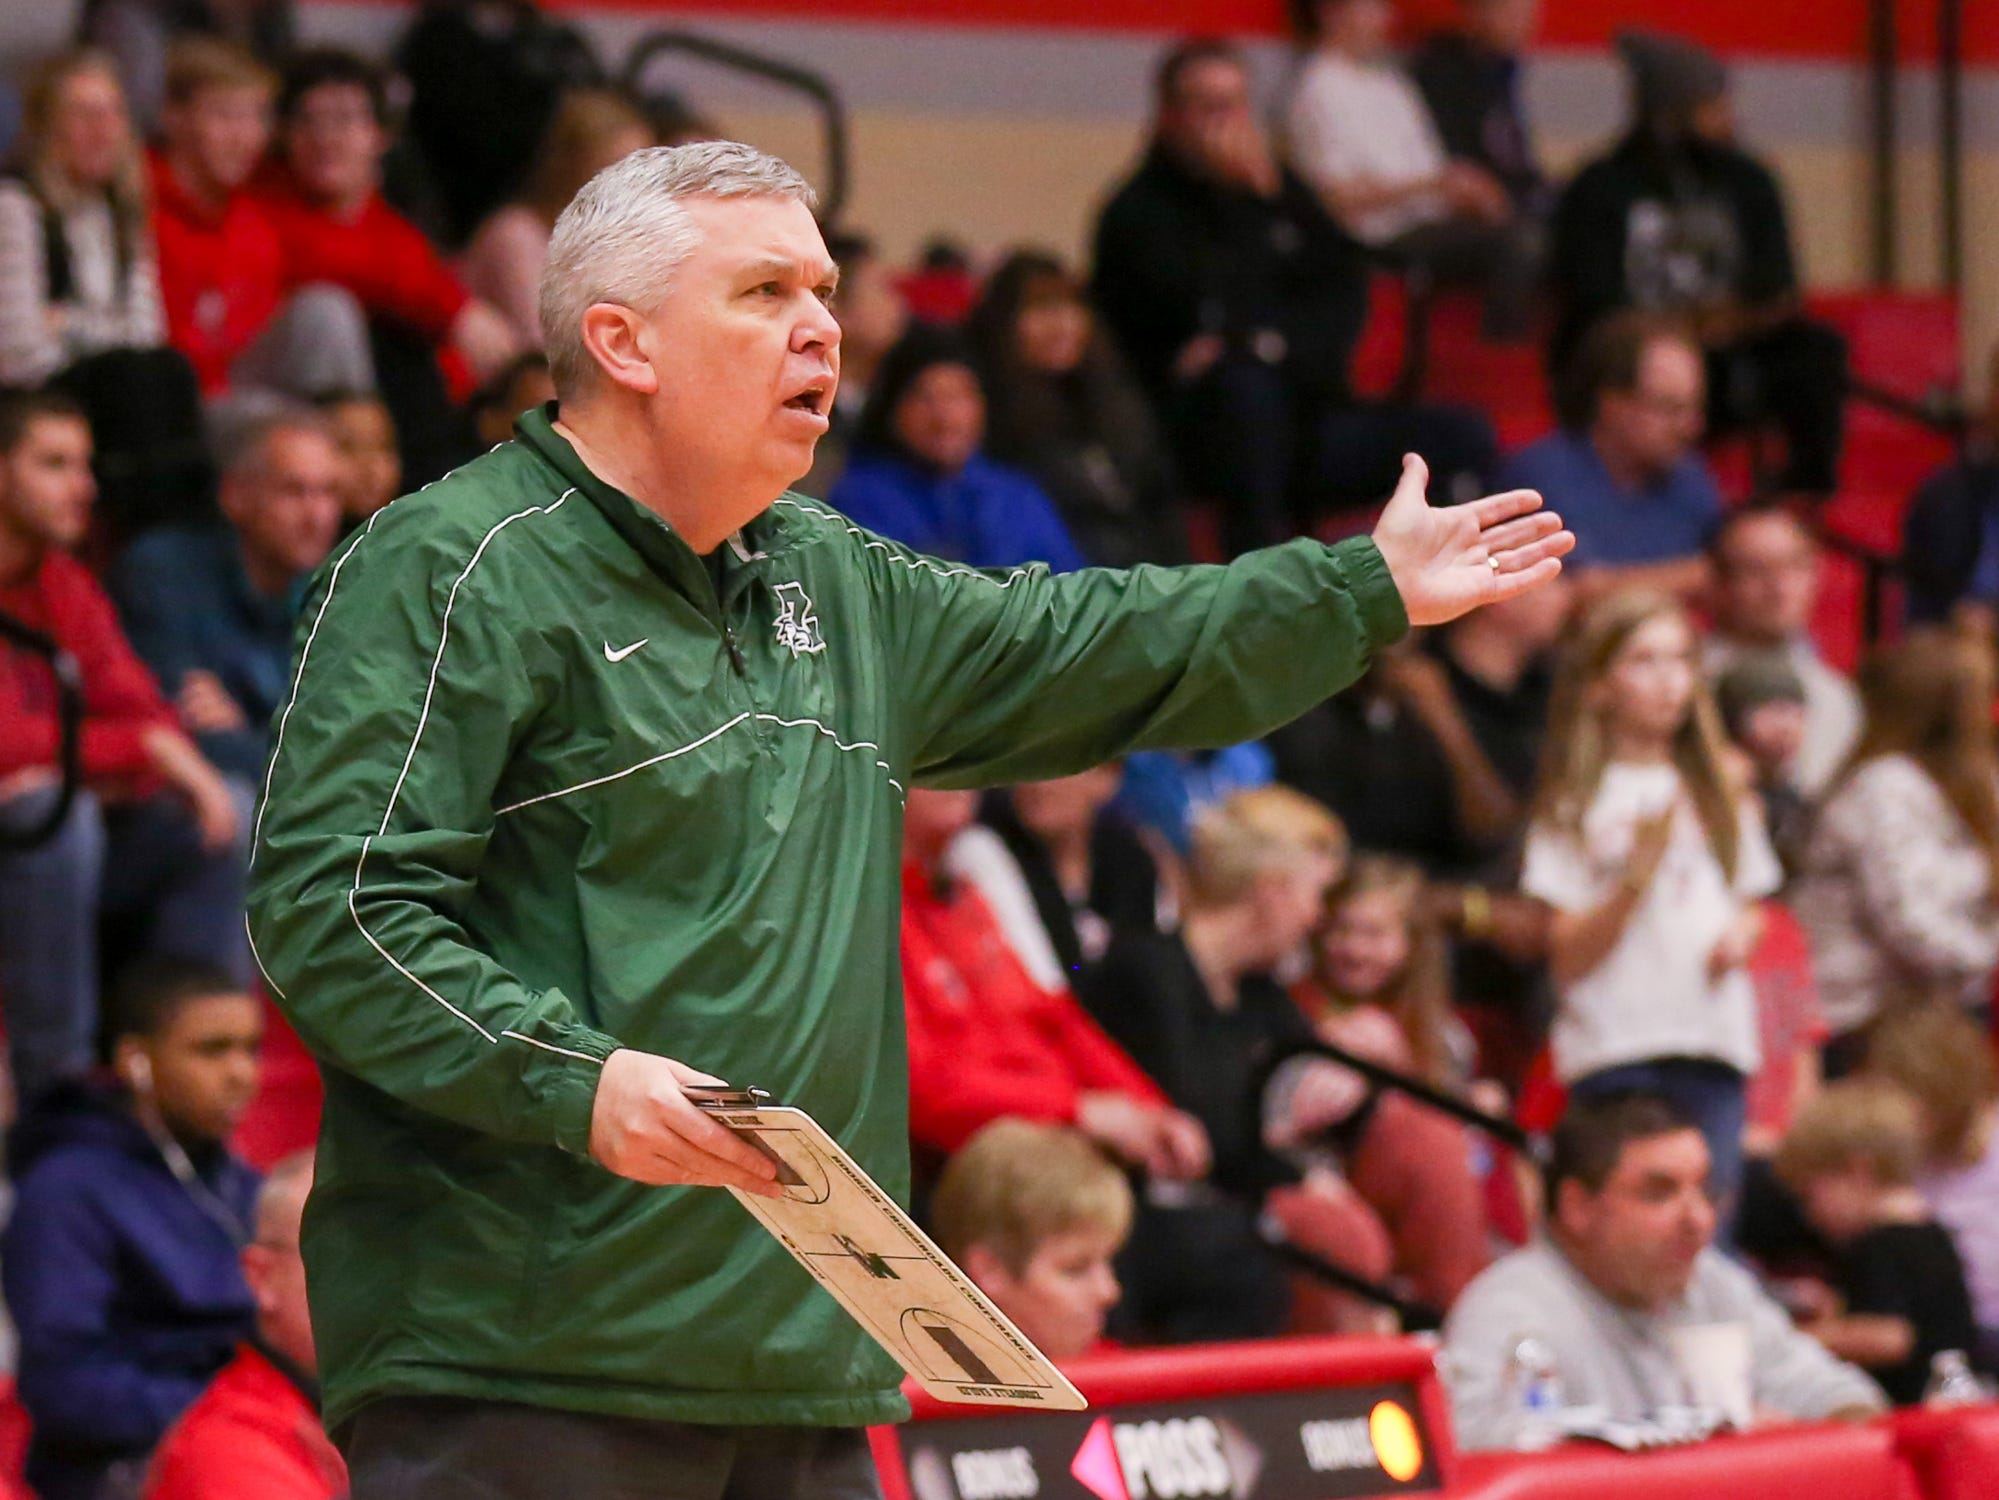 Zionsville High Coach Shaun Busick tries to focus his team as they struggle with scoring during the first half of Zionsville vs. Fishers high school boys varsity basketball game held at Fishers High School, February 15, 2019.